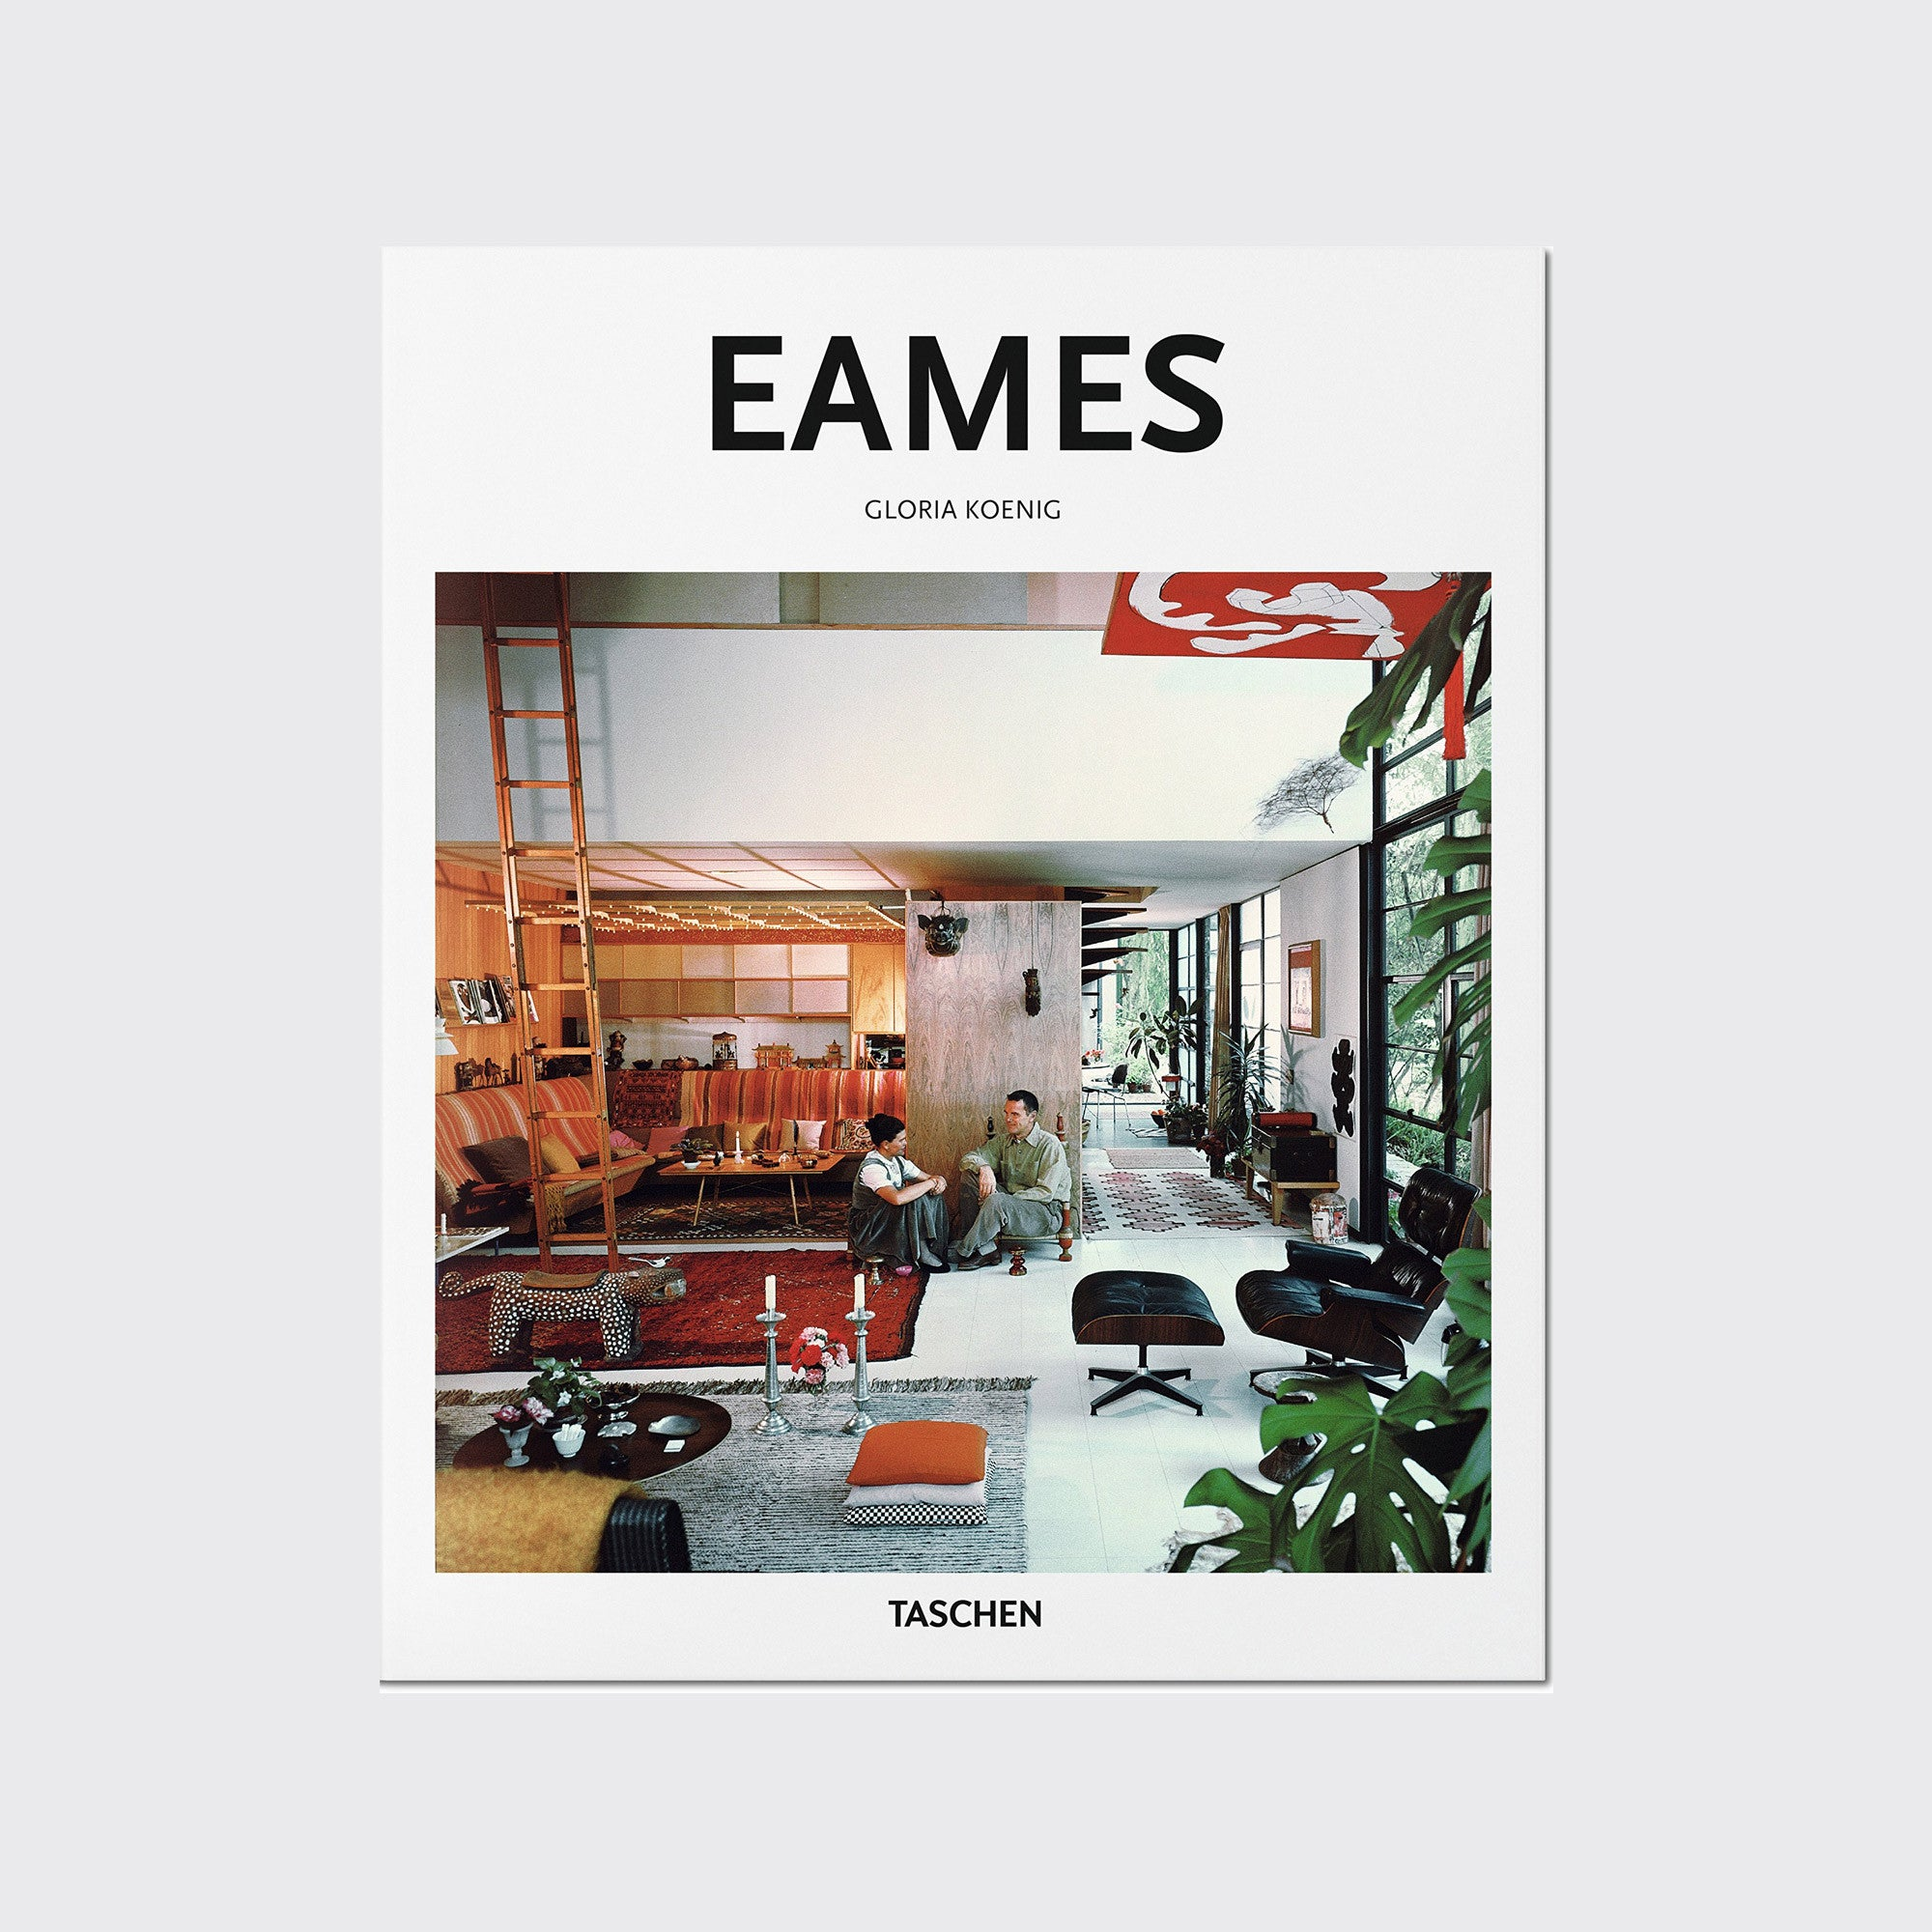 EAMES - by Gloria Koenig